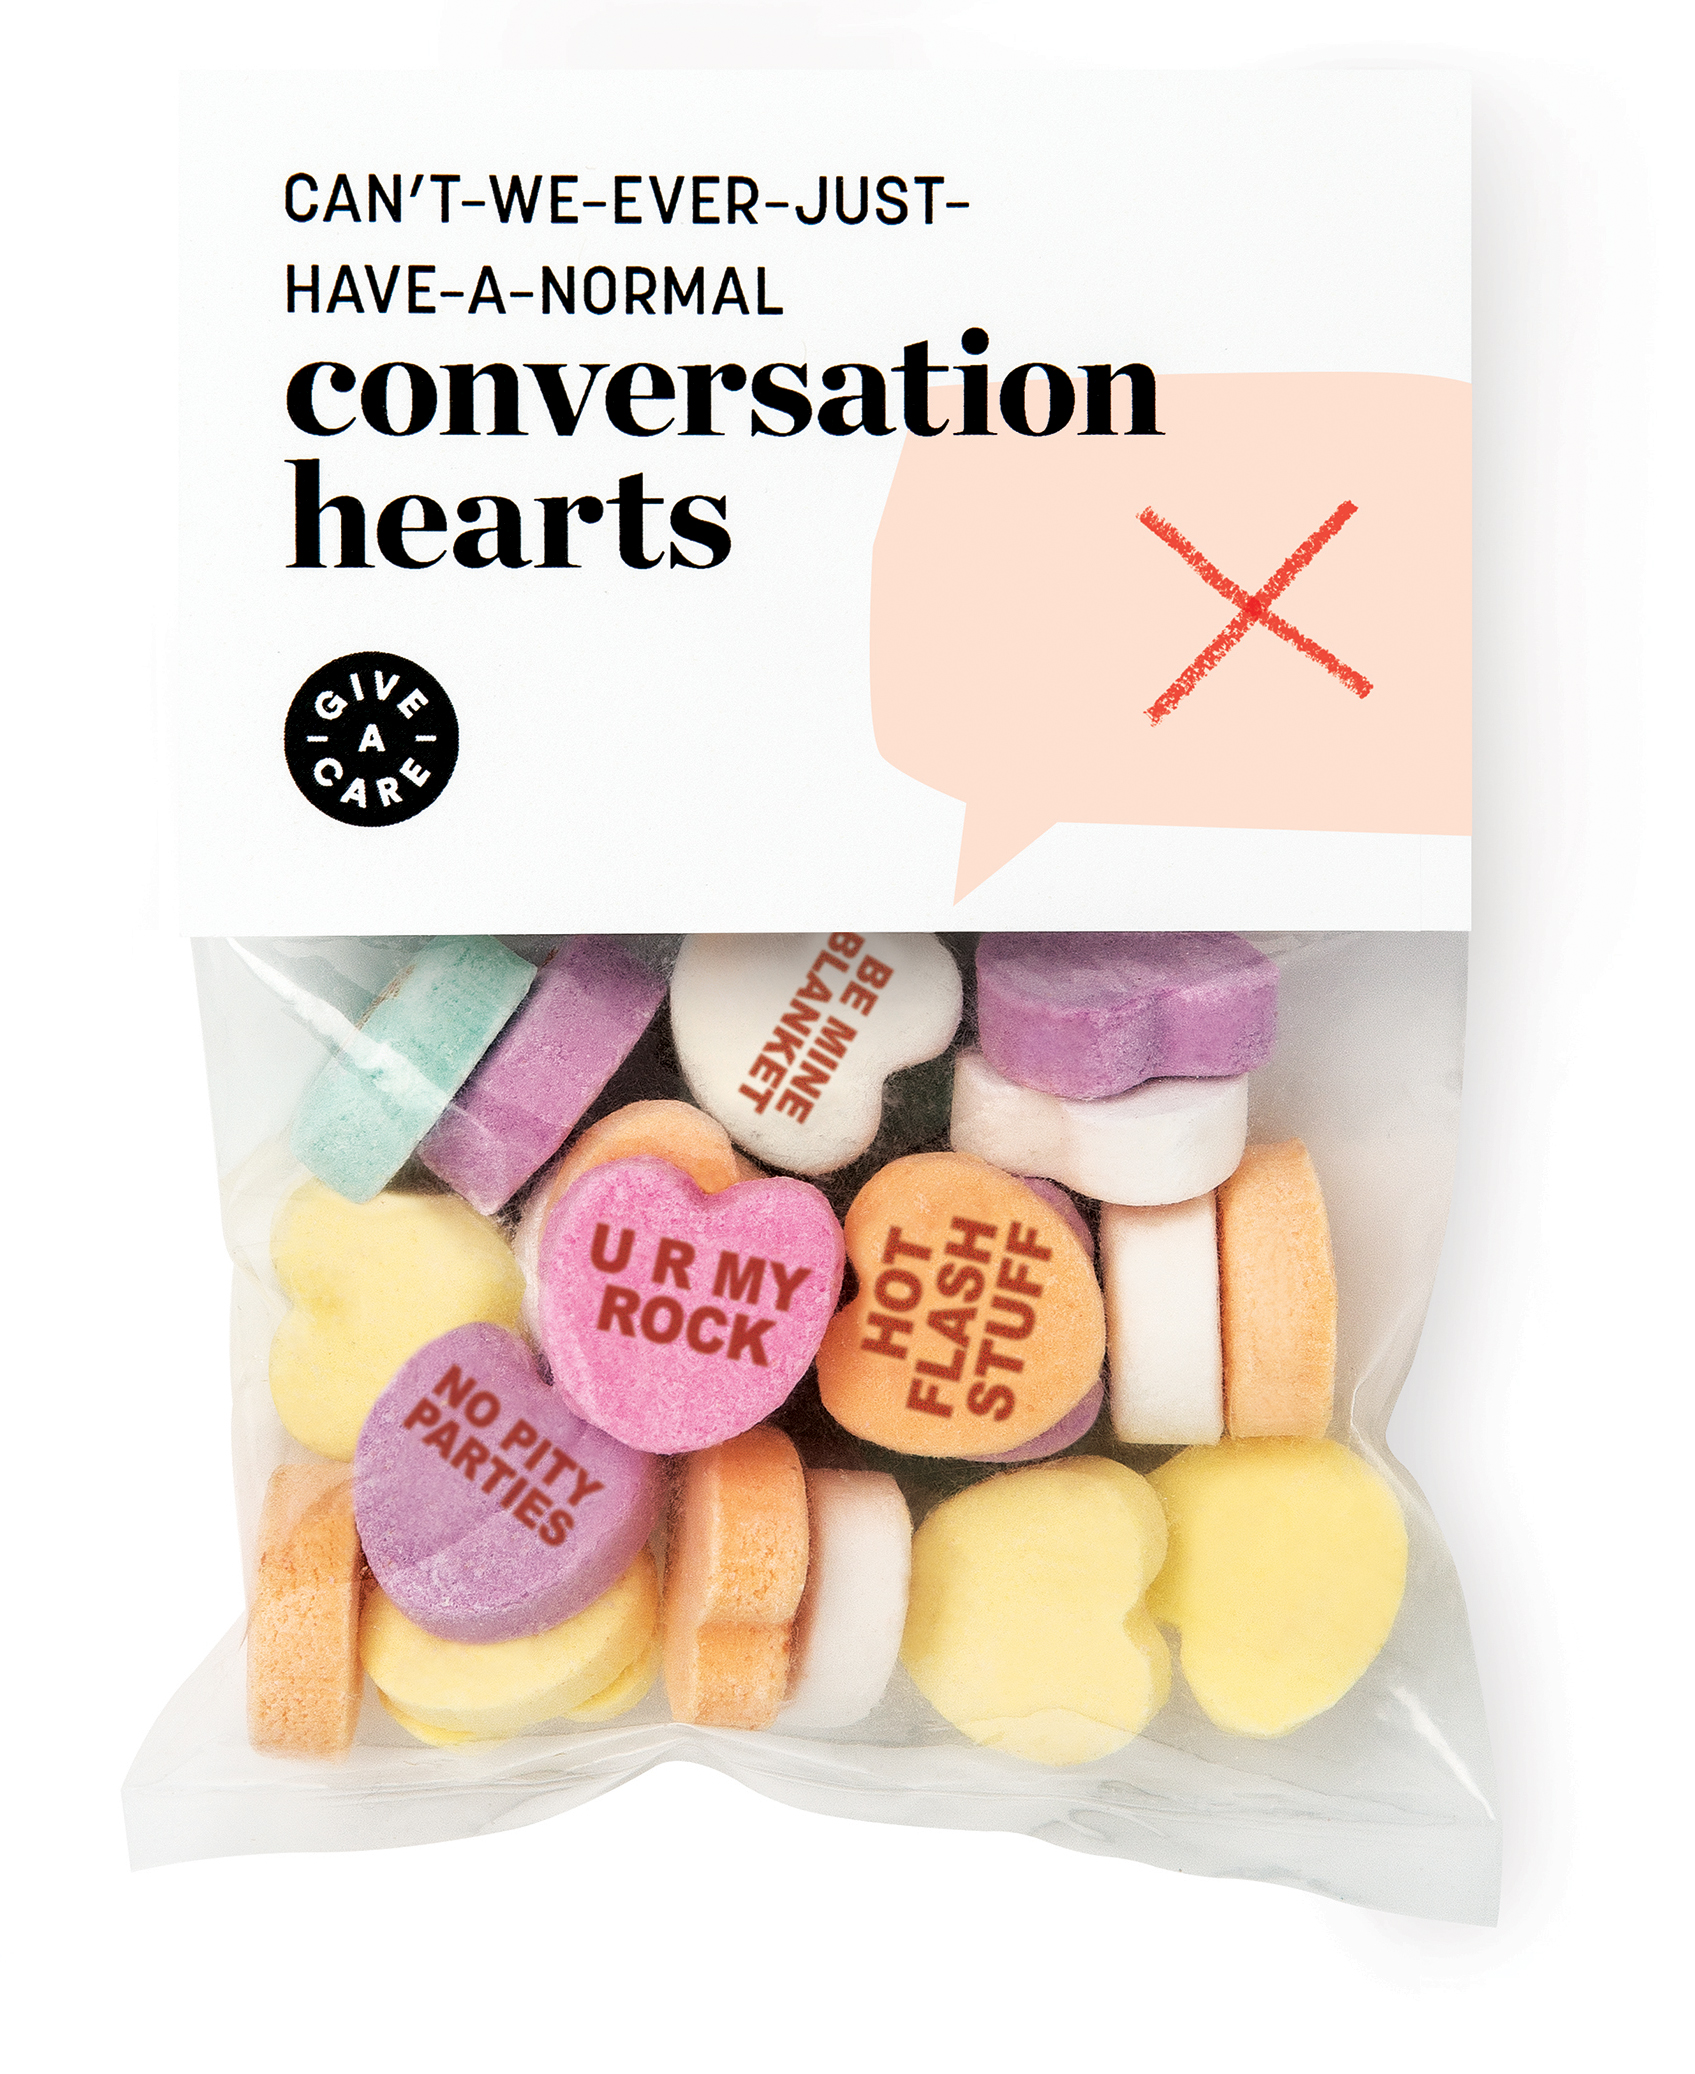 give_a_care_conversation_hearts.jpg